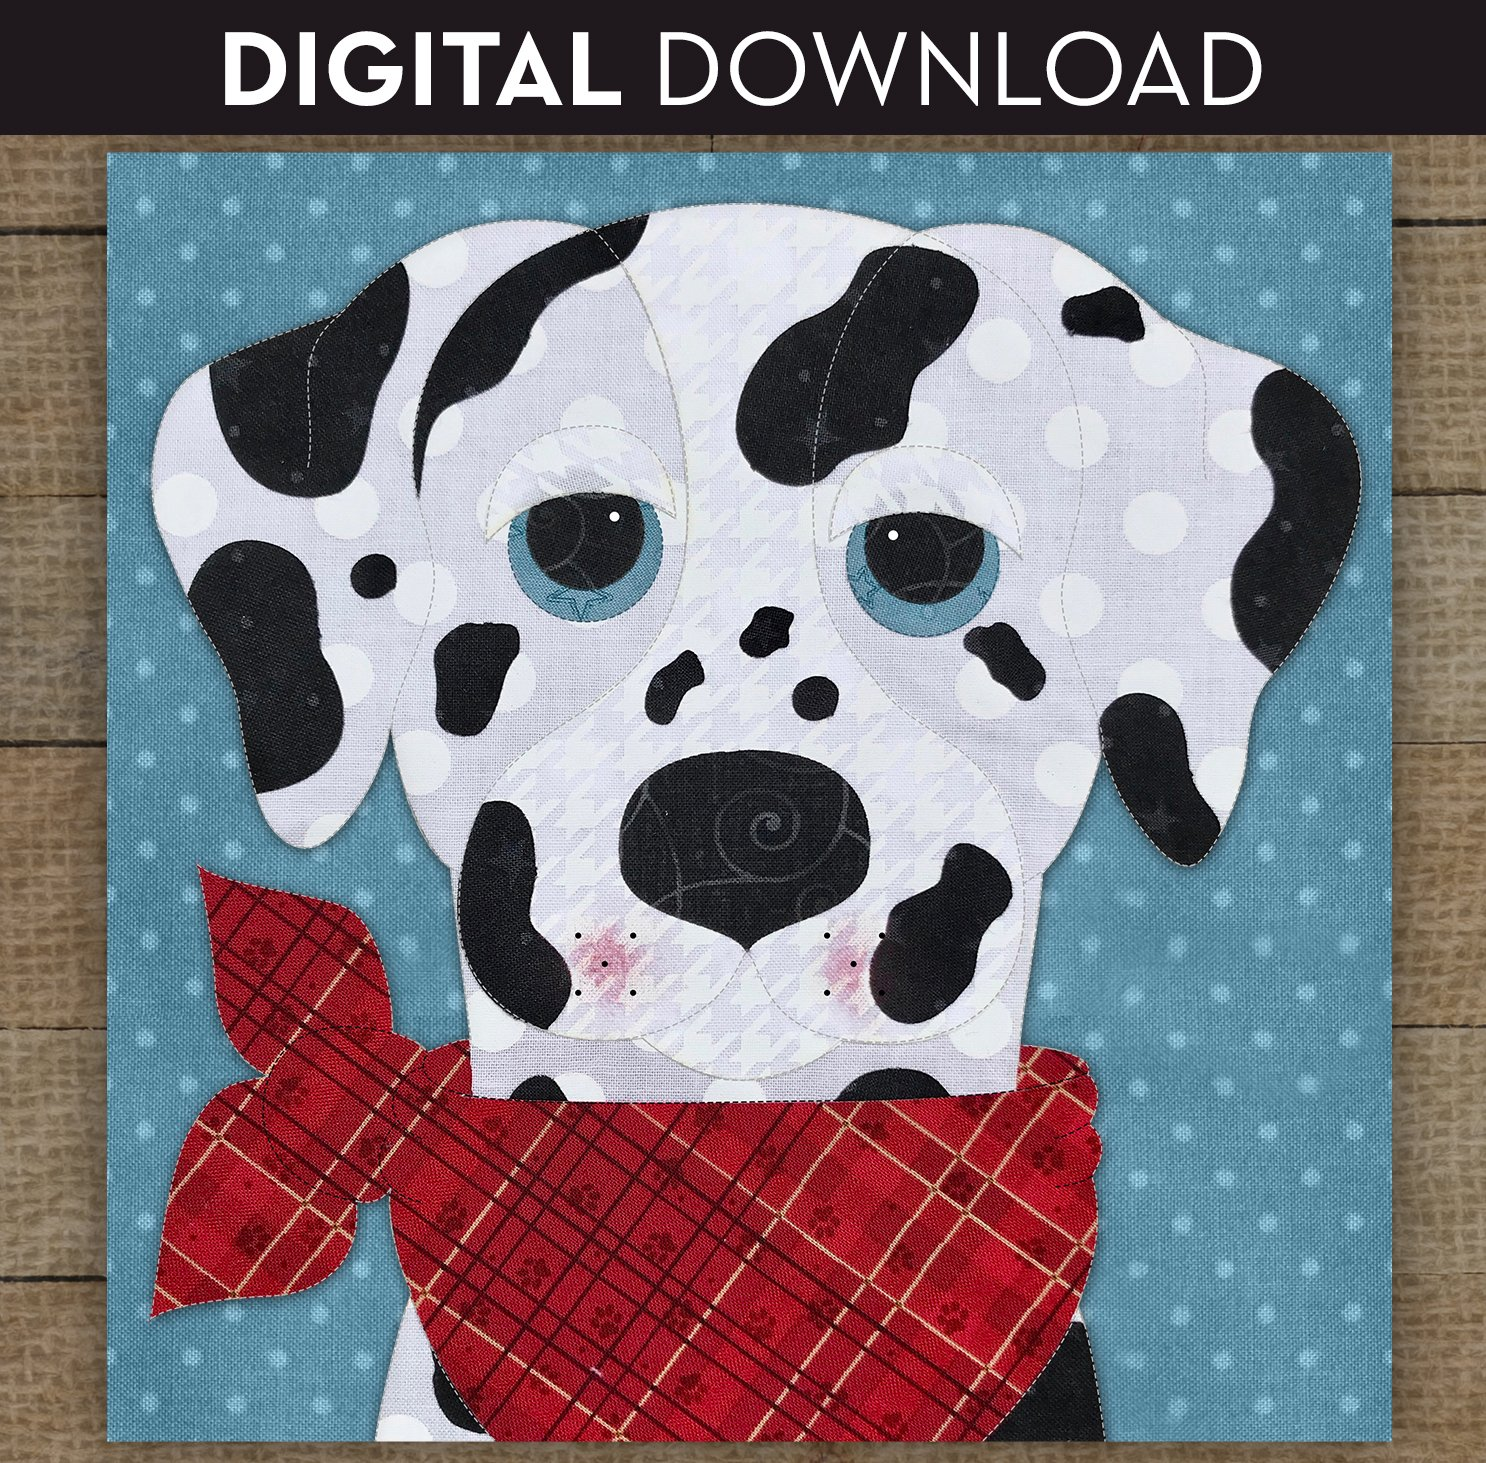 Dalmatian 2 - Download